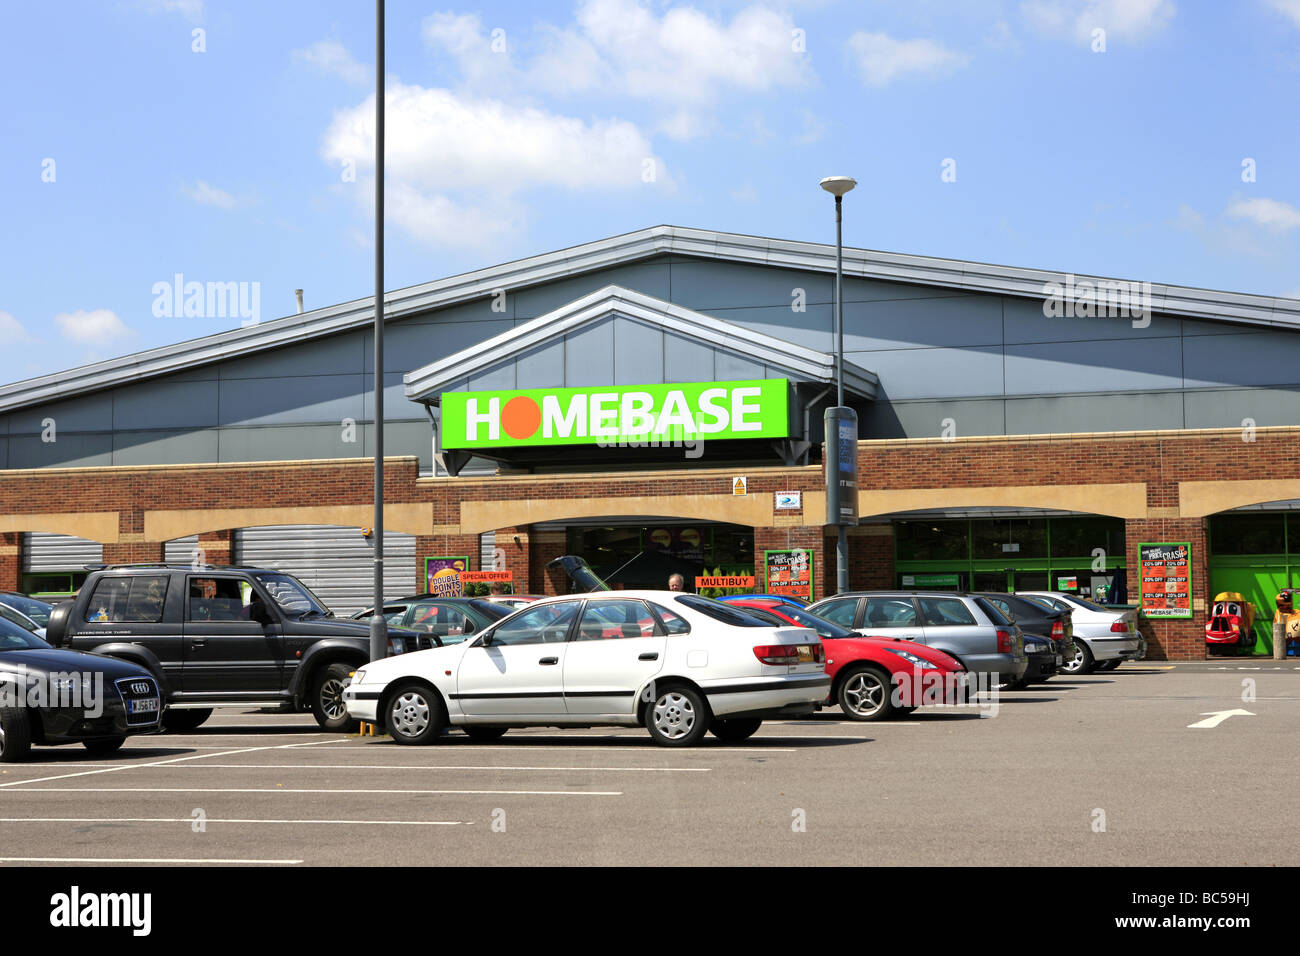 Homebase diy store and car park stock photo 24703550 alamy homebase diy store and car park solutioingenieria Images